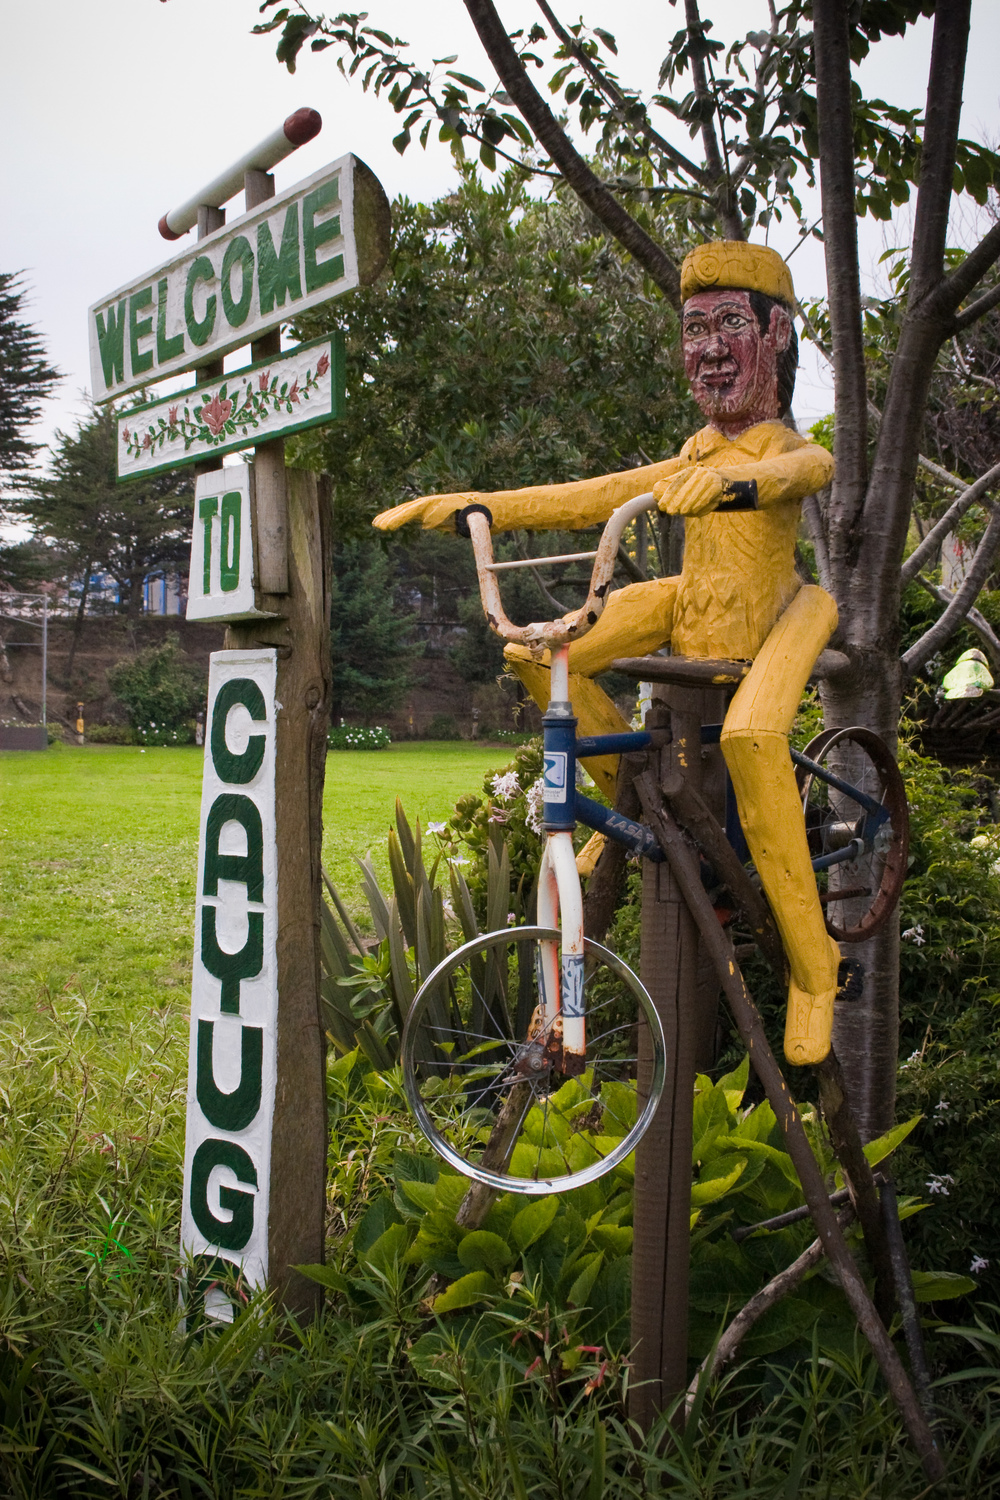 An employee of the San Francisco Recreation and Park Department worked on Cayuga Park for more than 20 years, transforming a barren landscape into a neighborhood recreation area with lush vegetation, walking trails, themed gardens, observation decks, and hundreds of hand-carved wooden figurines, totem poles and statues.